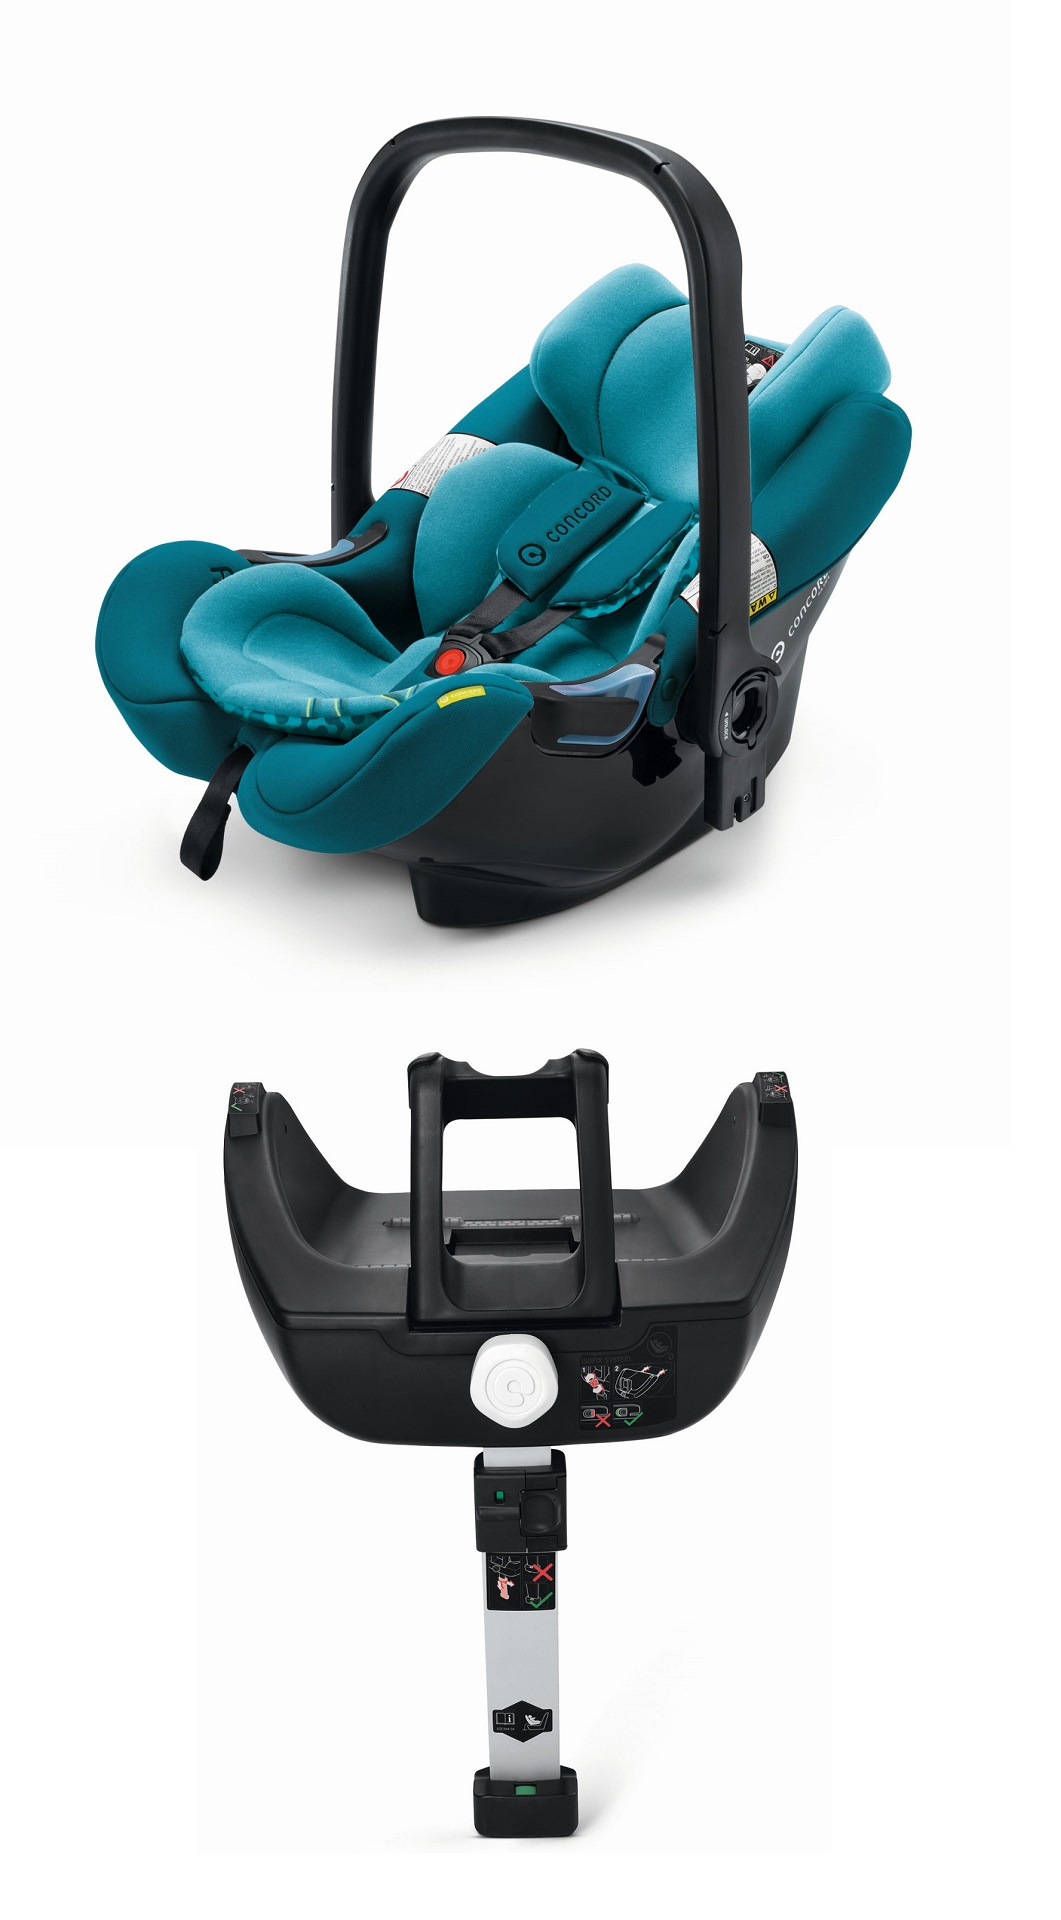 concord infant car seat air safe incl airfix isofix base 2018 scuba green buy at kidsroom. Black Bedroom Furniture Sets. Home Design Ideas